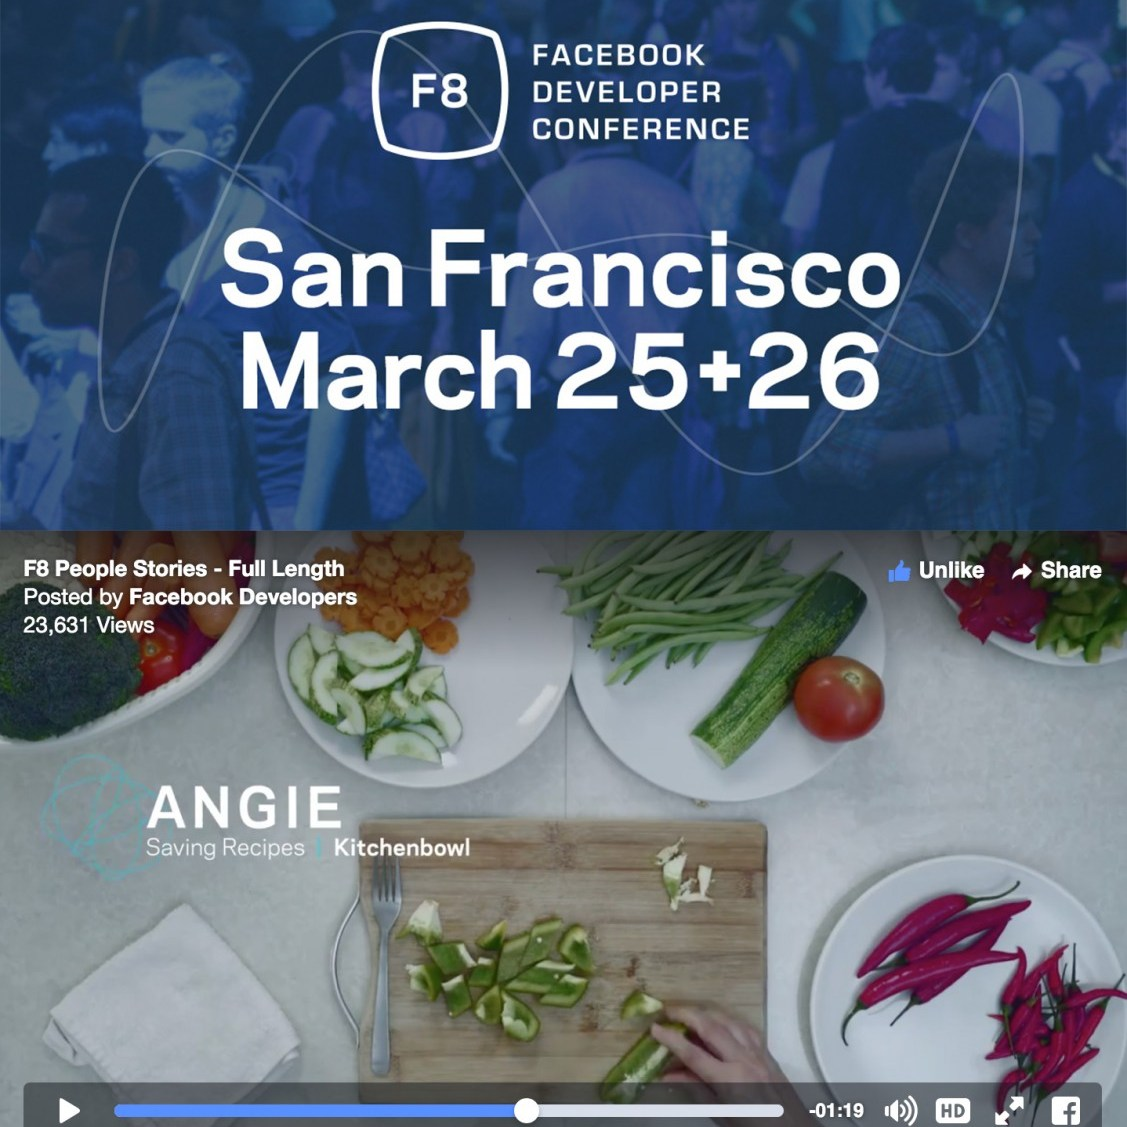 Facebook F8 Conference Featuring Huang Kitchen